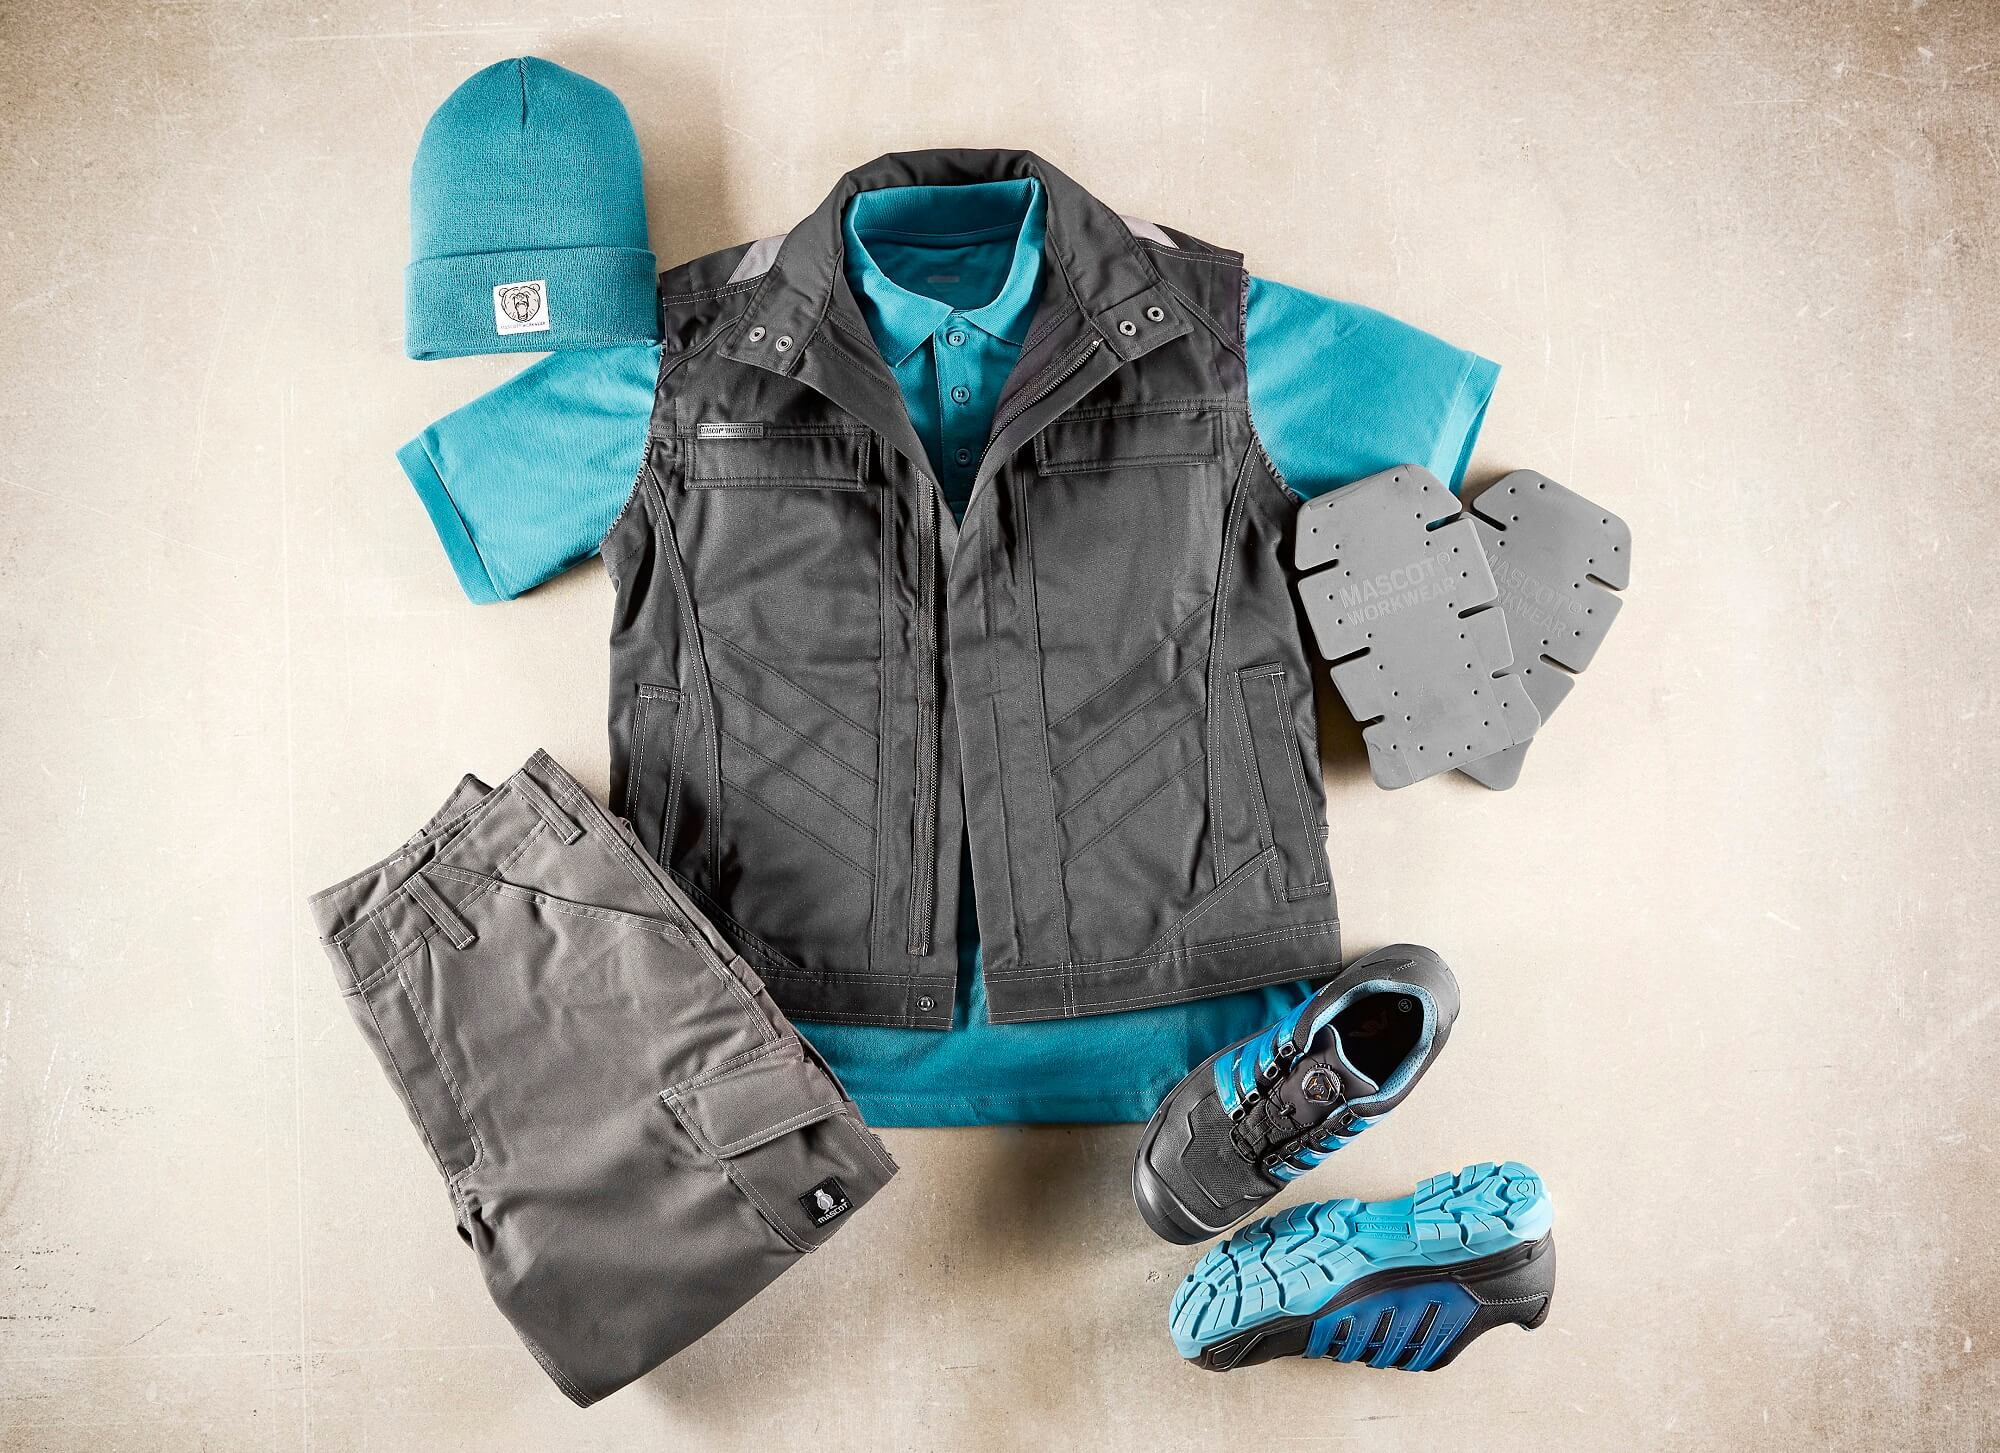 Grey - Work Gilet, Polo shirt & Trousers with kneepad pockets - Collage